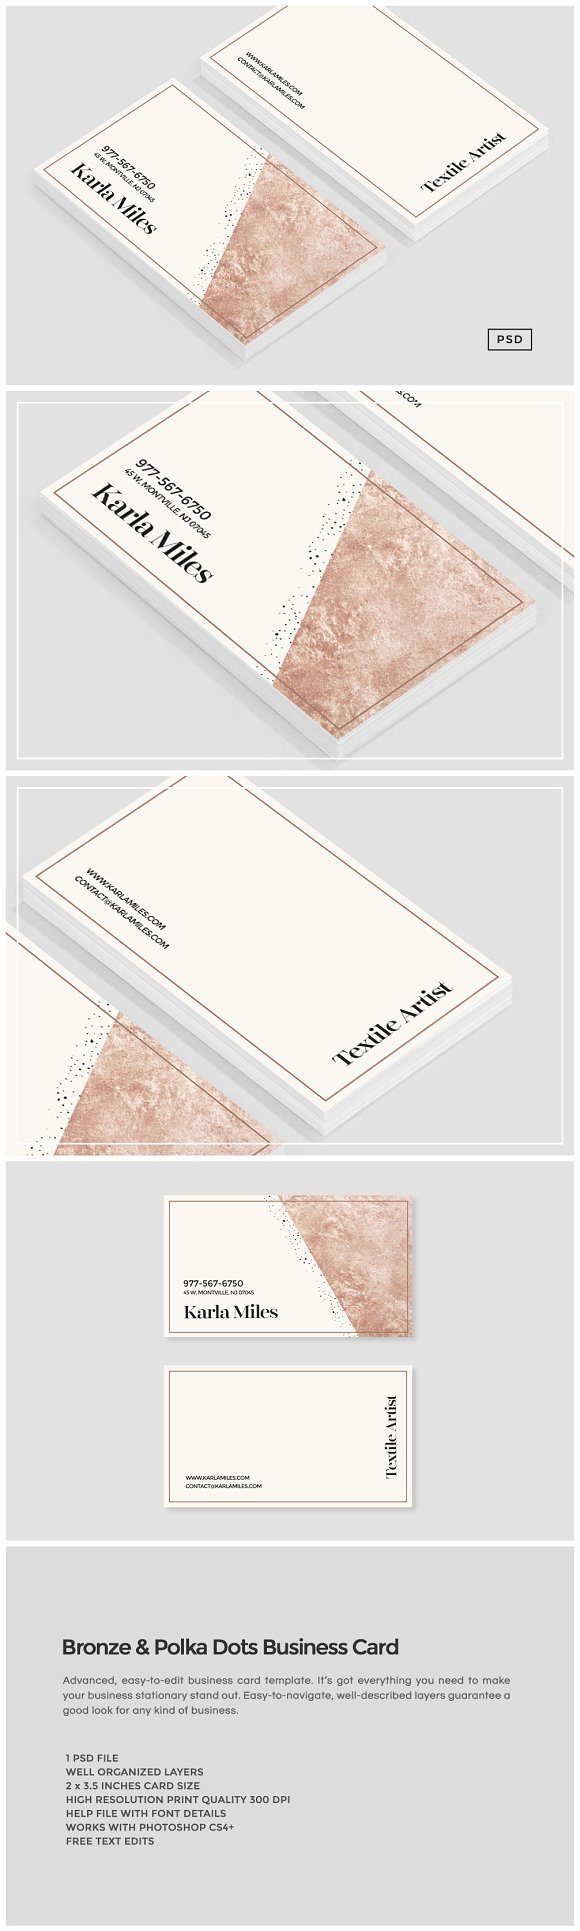 Bronze polka dots business card business card templates bronze polka dots business card business card templates creative market reheart Gallery